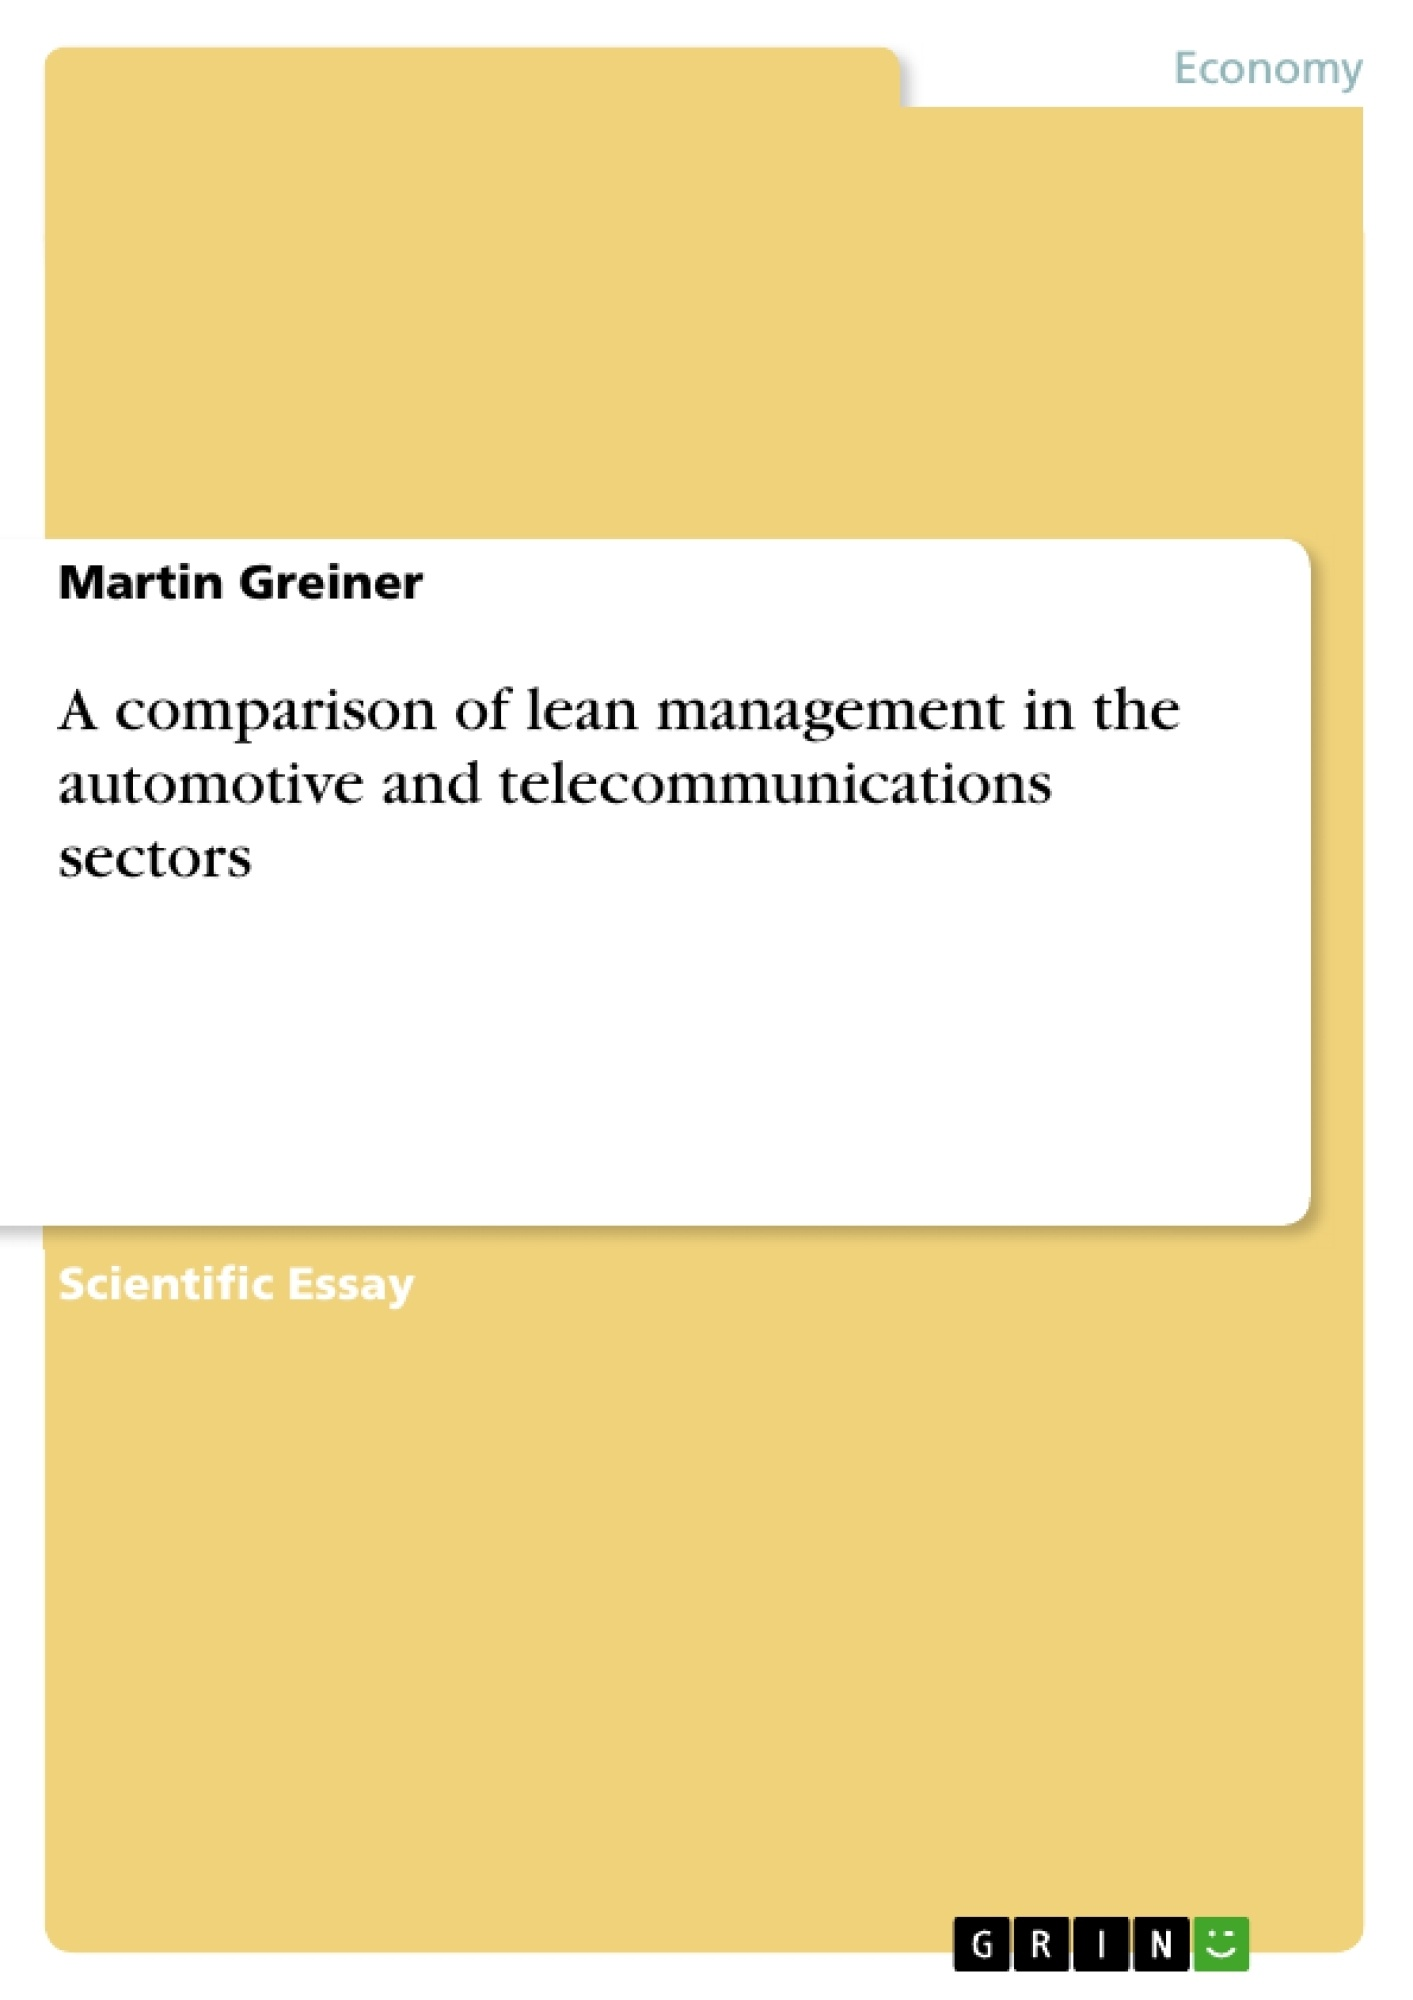 Title: A comparison of lean management in the automotive and telecommunications sectors